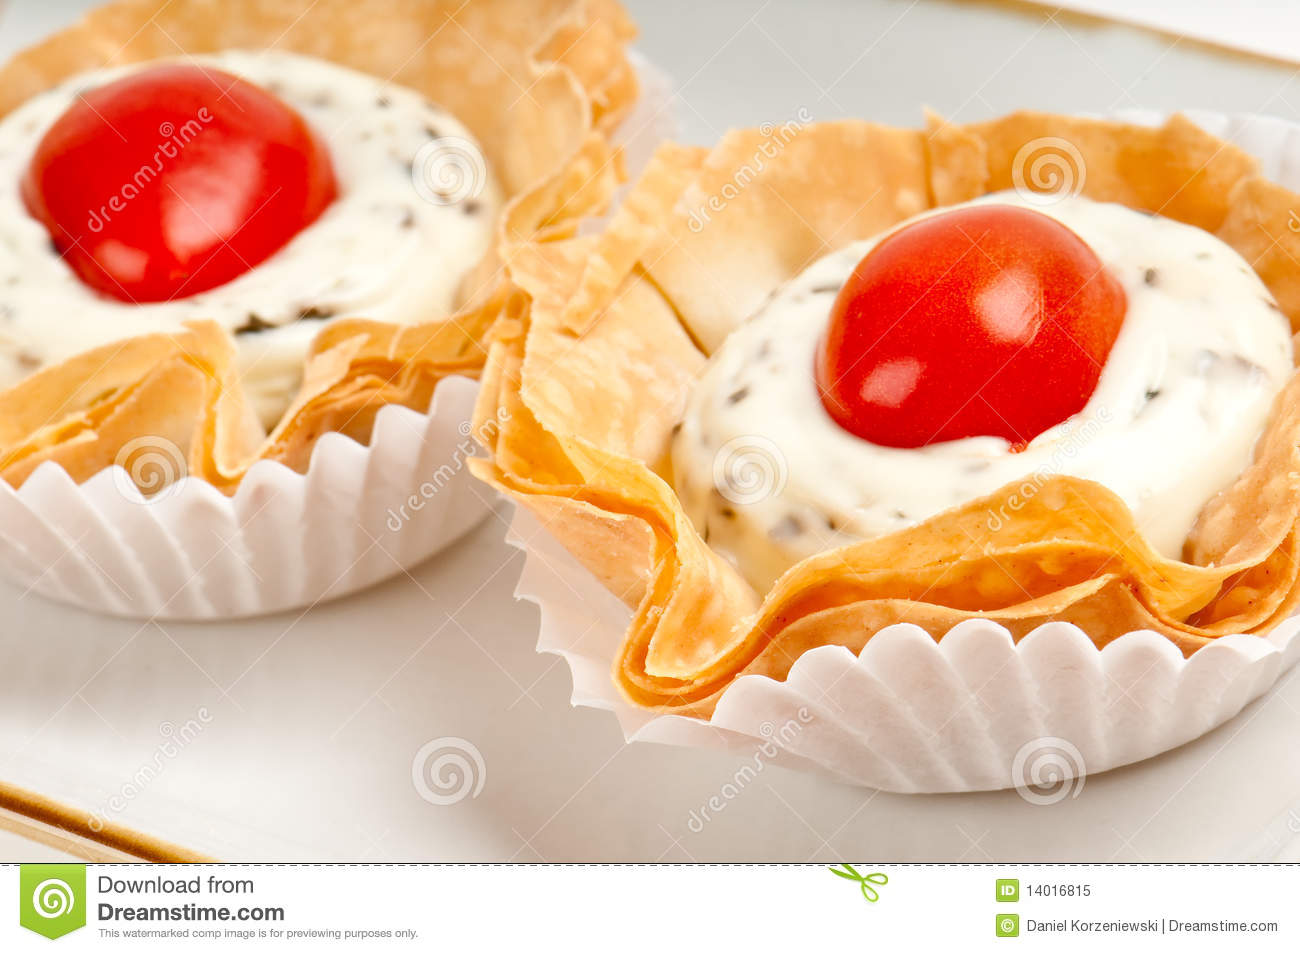 Caprese canape royalty free stock photo image 14016815 for What does canape mean in french